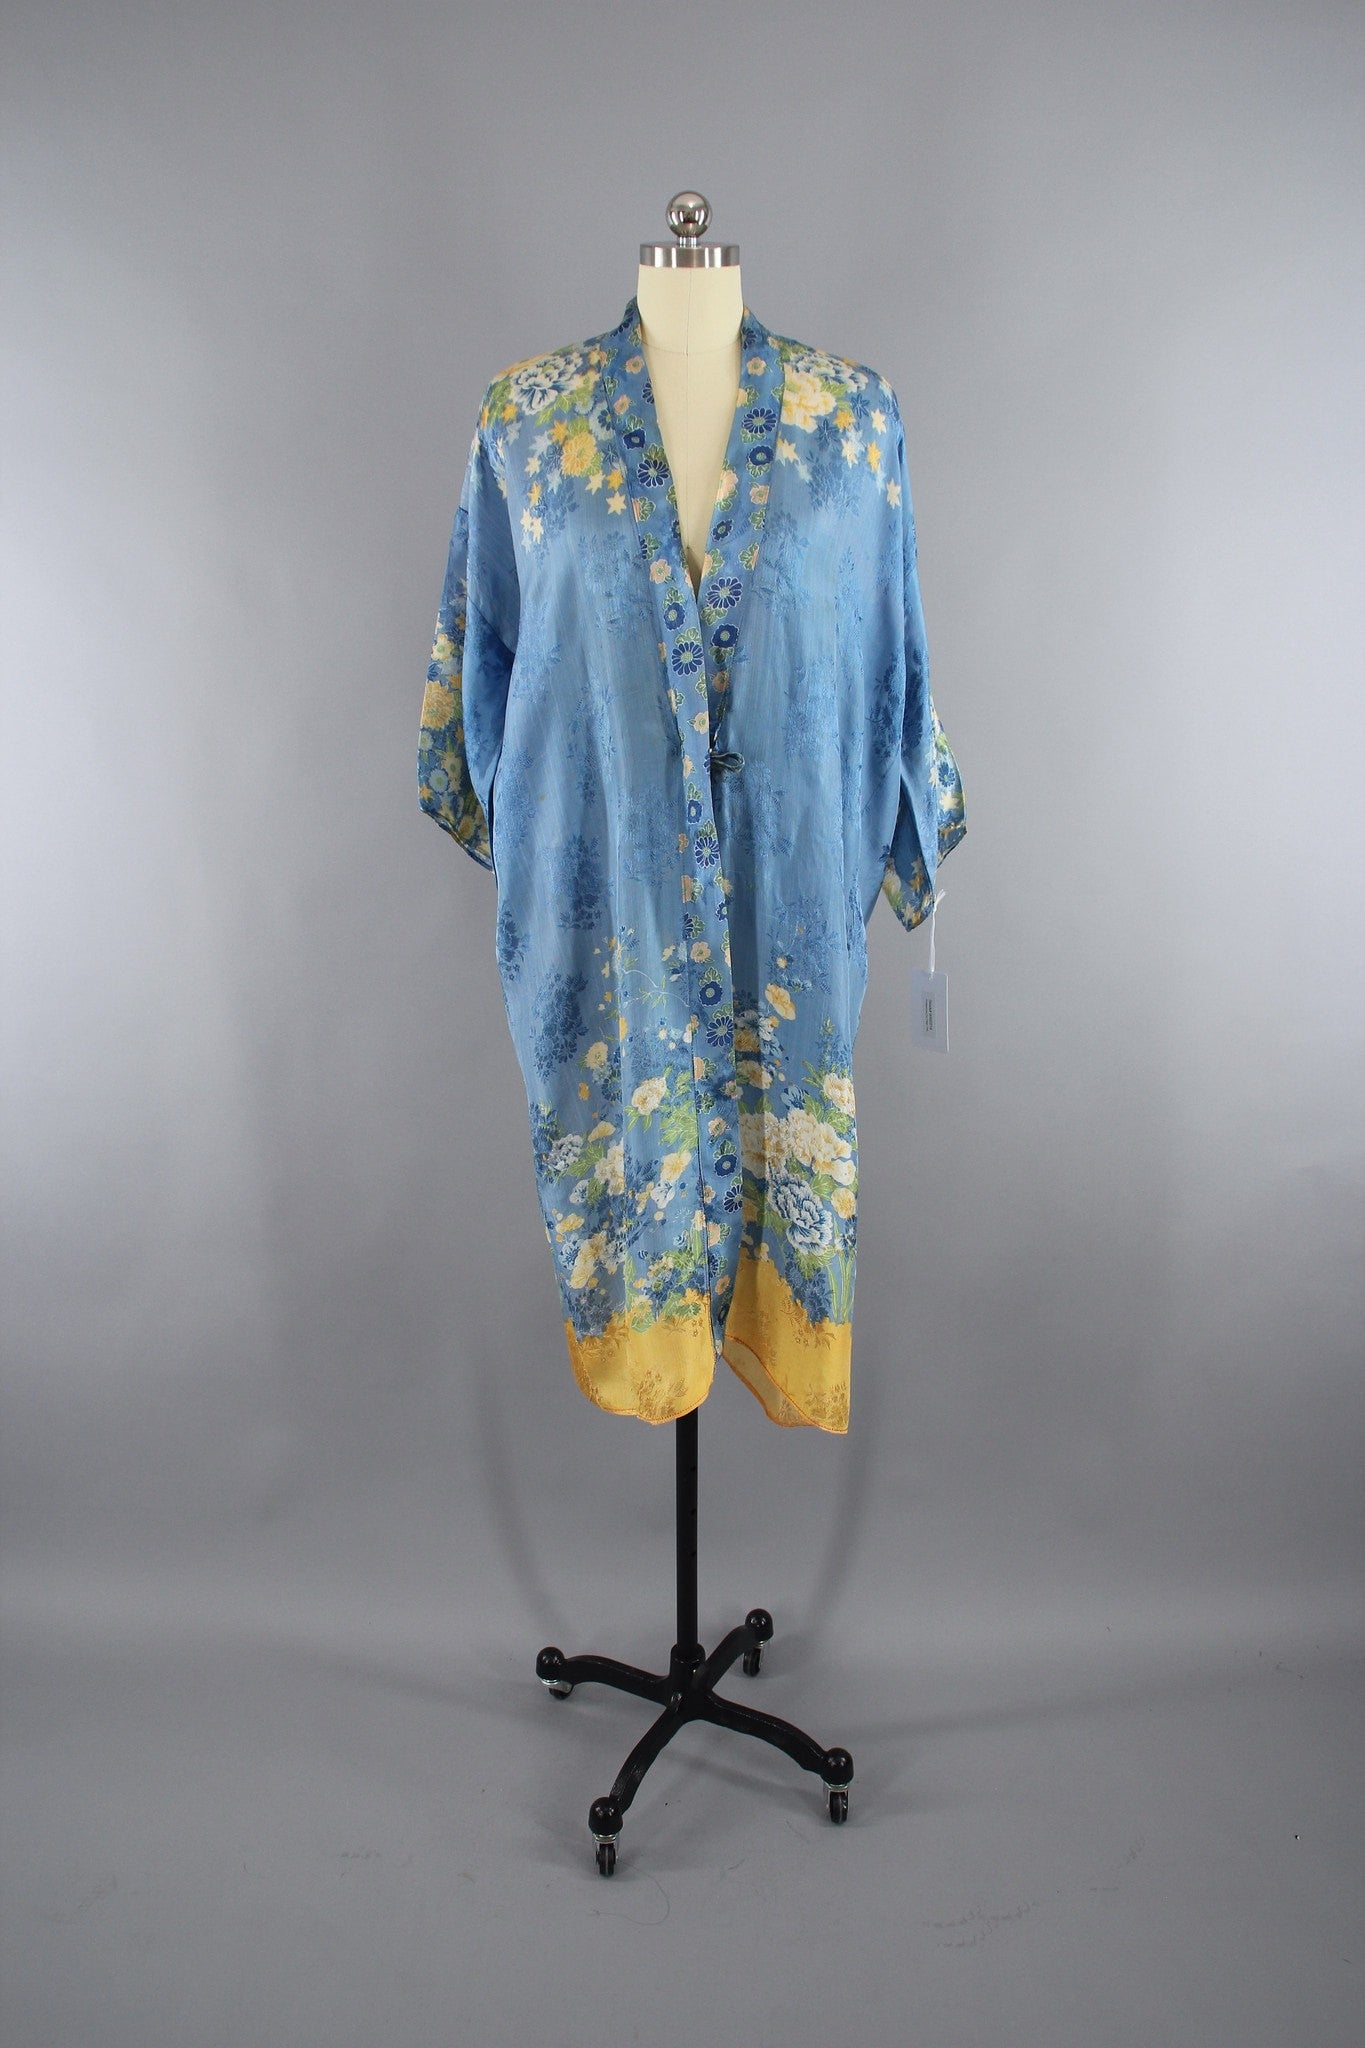 1920s - 1930s Vintage Silk Kimono Robe / Art Deco Flapper / Sky Blue and Yellow Floral Print Lingerie ThisBlueBird